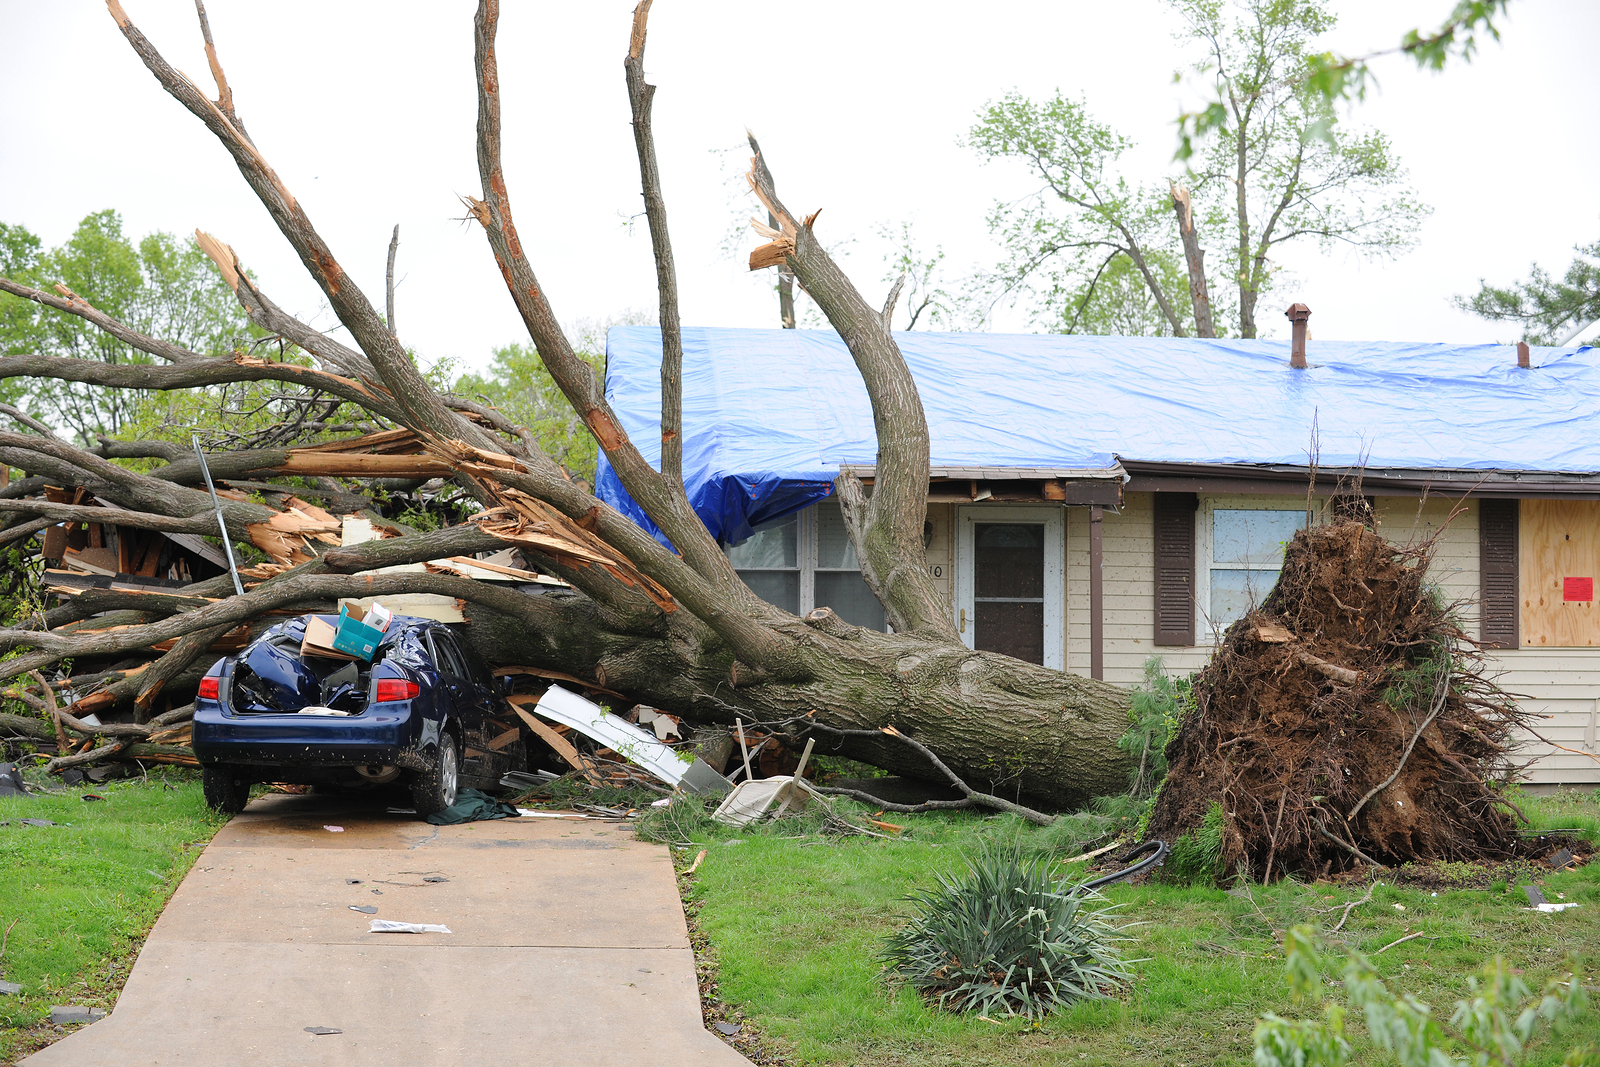 3 checks you need to do to protect your home before a storm